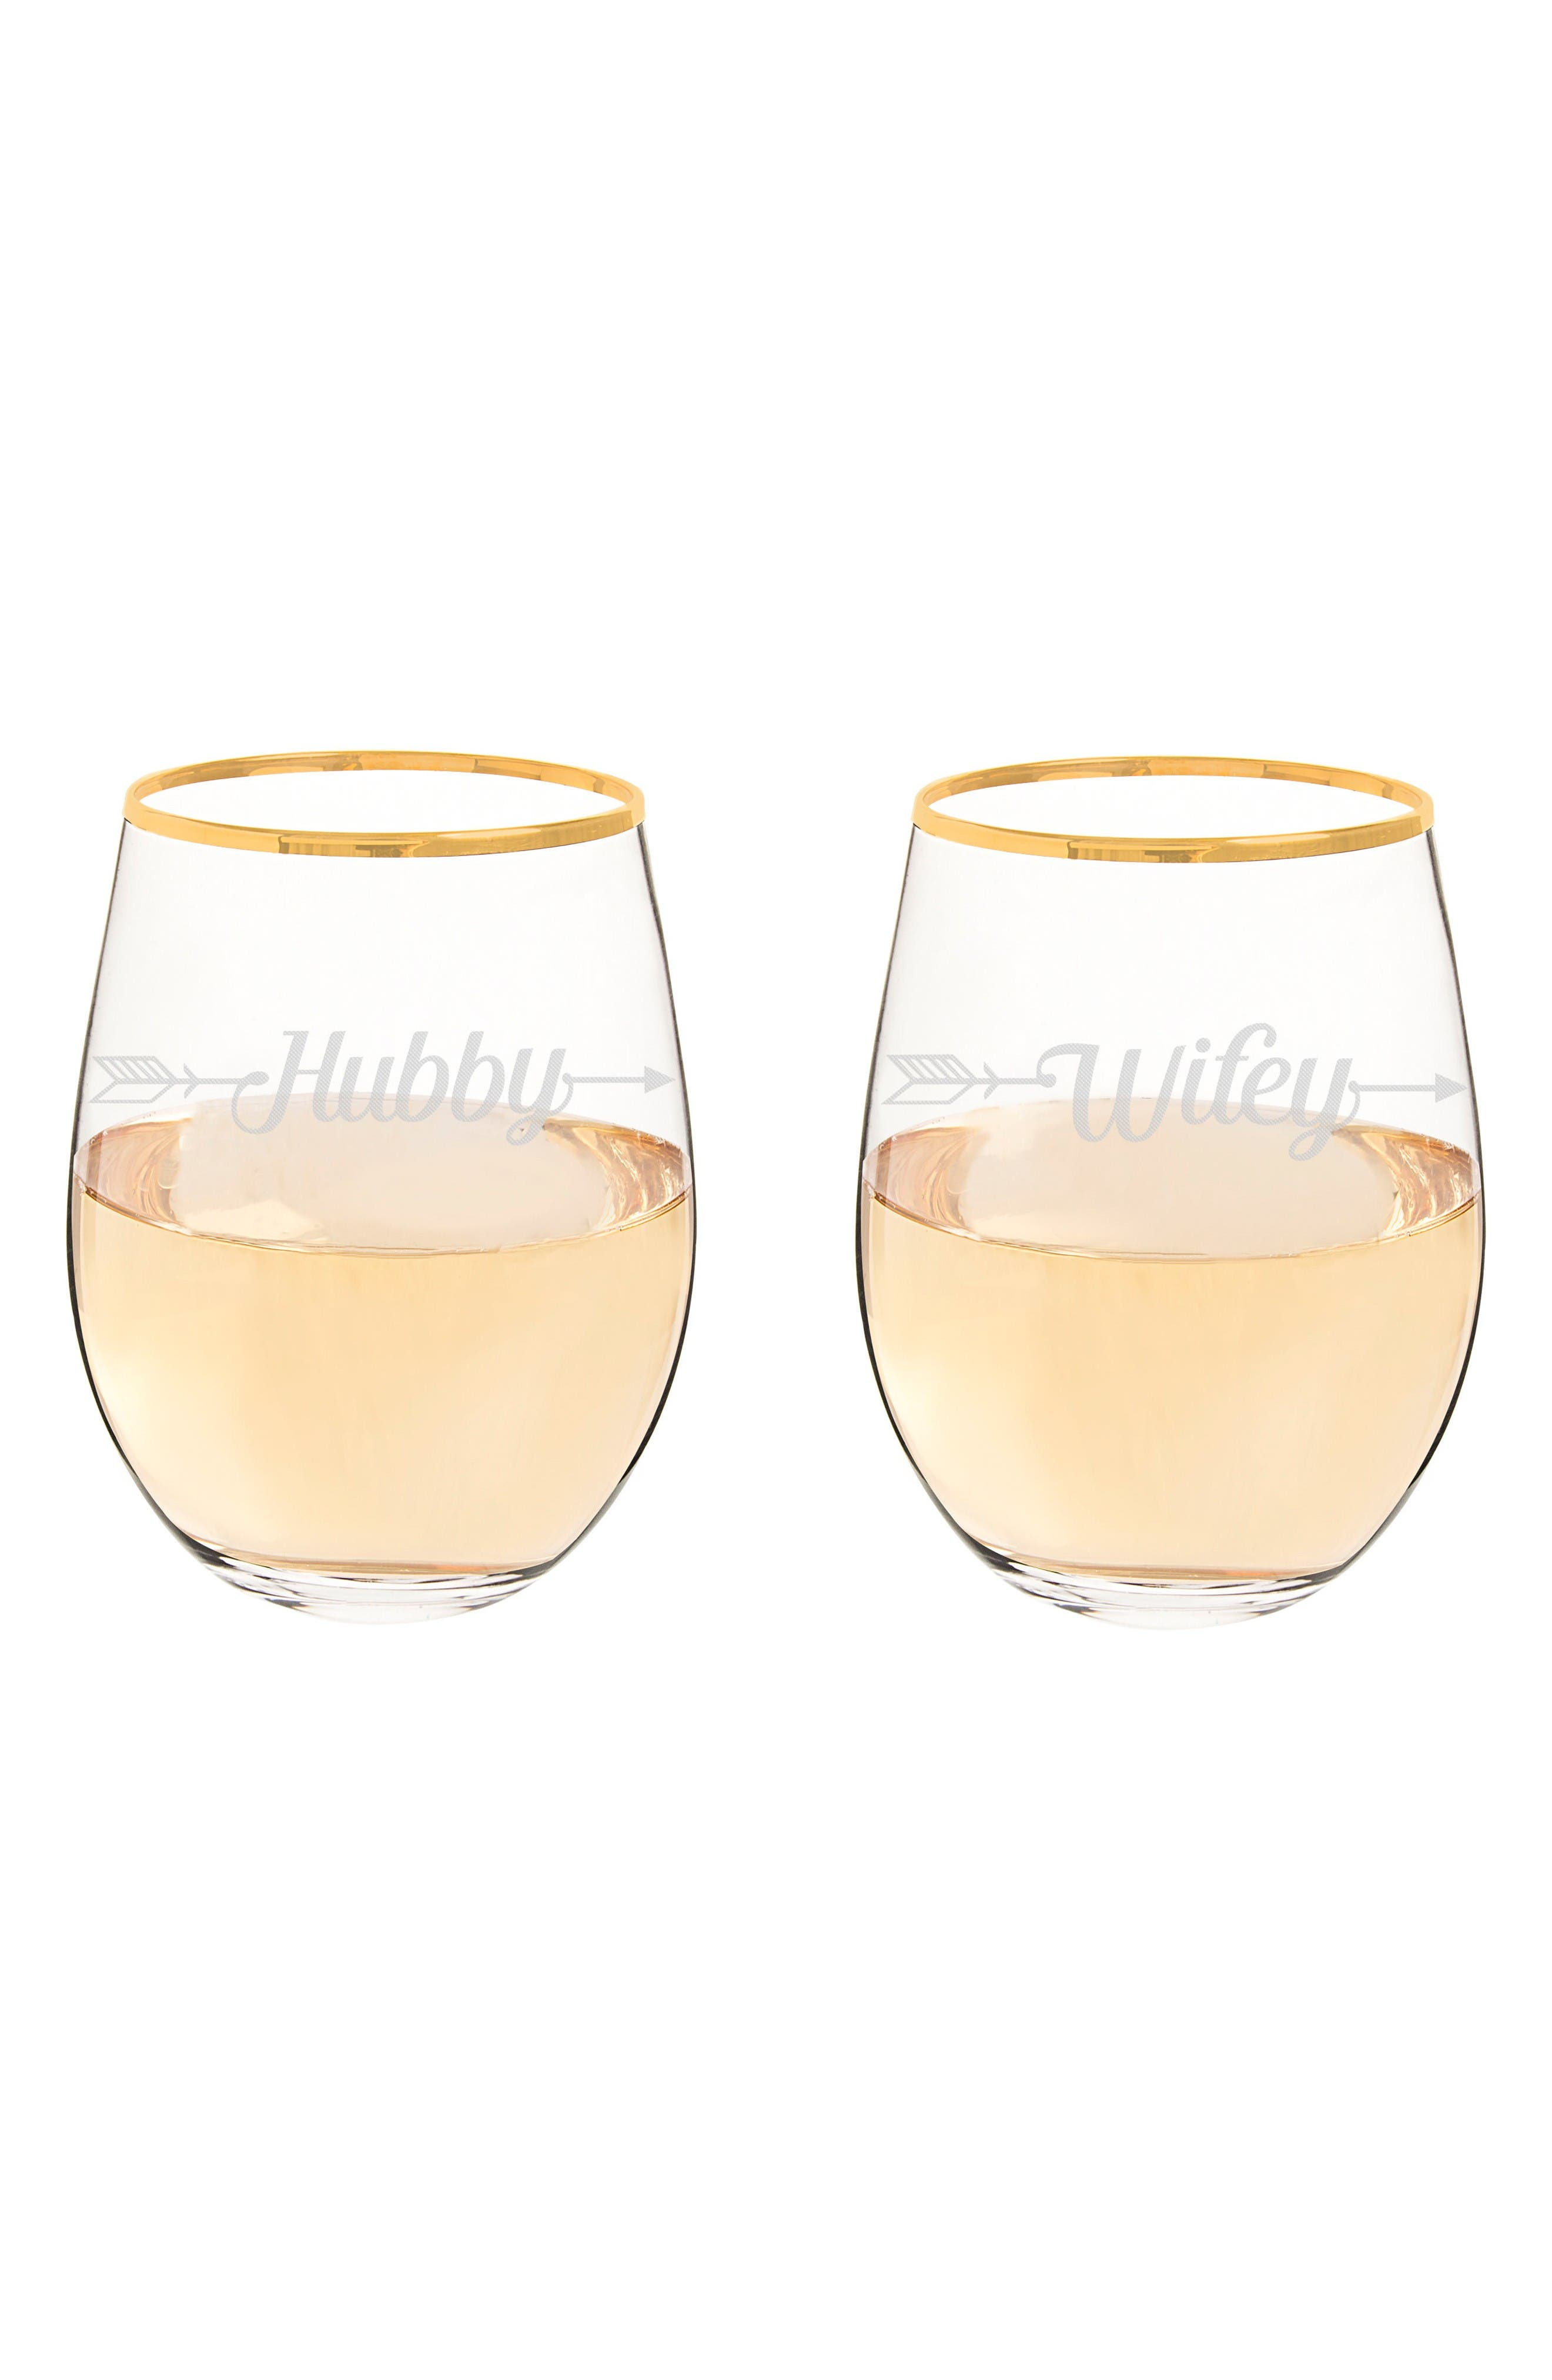 Cathy's Concepts Hubby/Wifey Set of 2 Gold Rimmed Stemless Wine Glasses